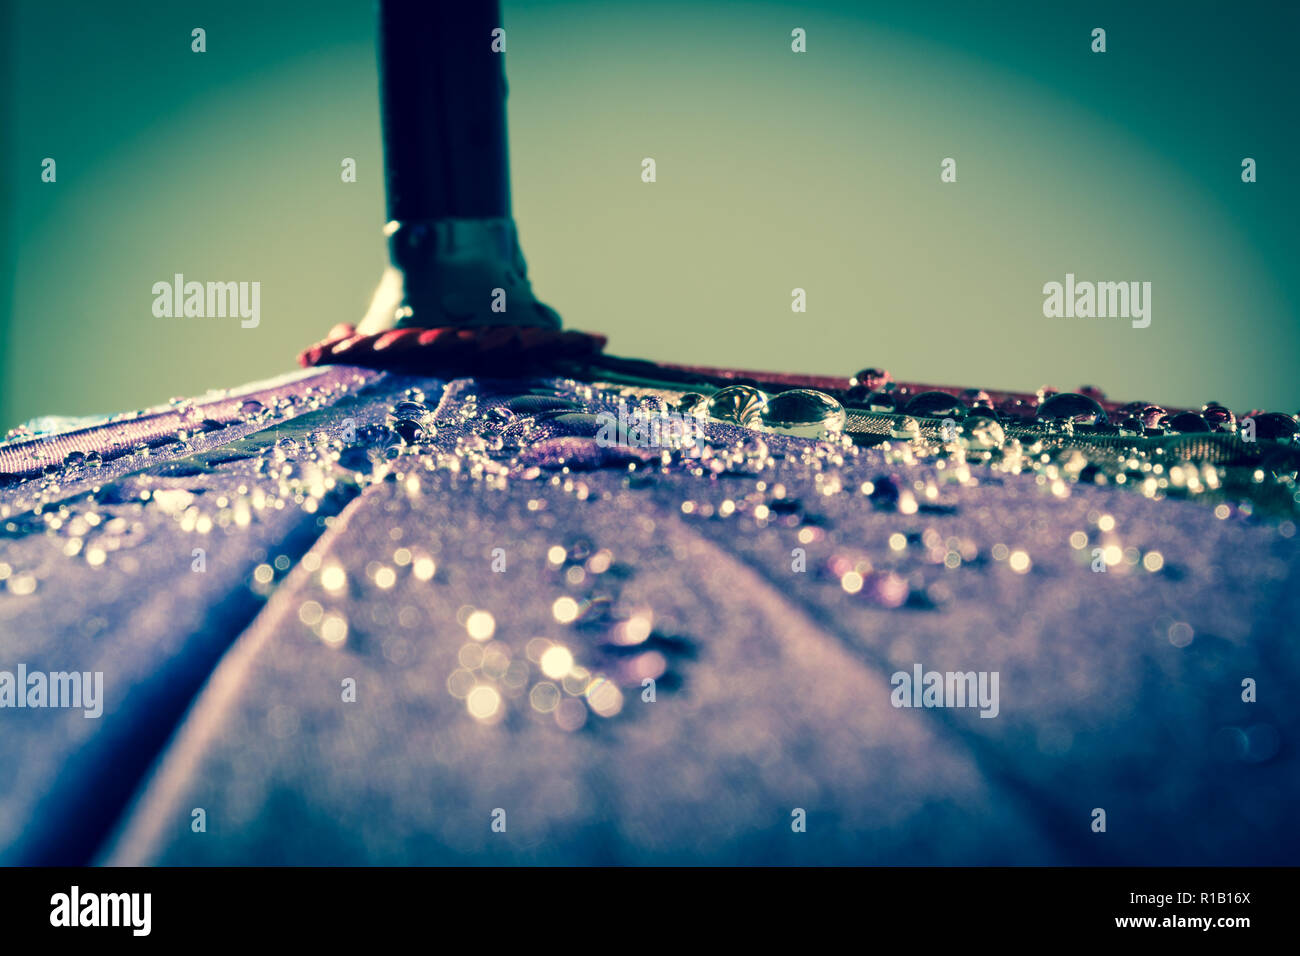 Raindrops on a colorful umbrella with all the colors of the rainbow close-up macro waterdrops background. Vintage, grunge, old, retro style photo. Stock Photo